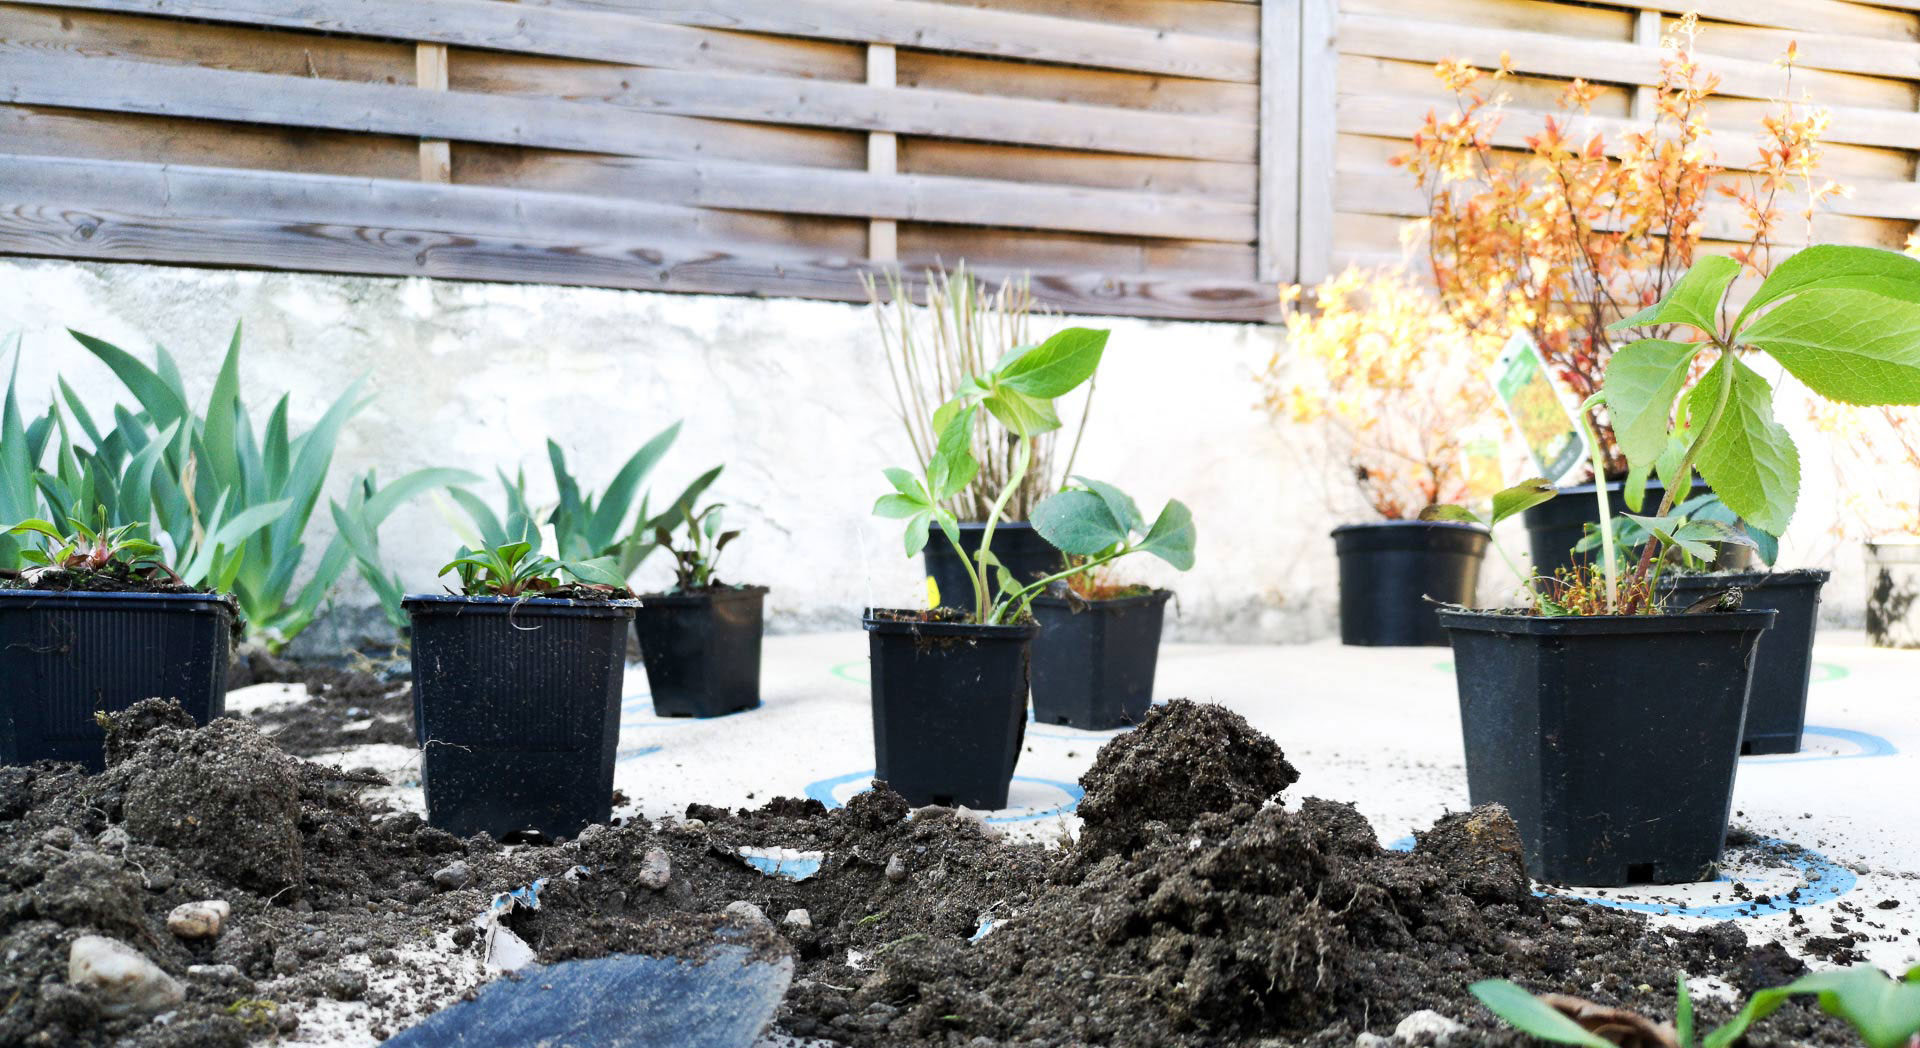 photo of plants in pots placed on the biodegradable cardboard provided by draw me a garden